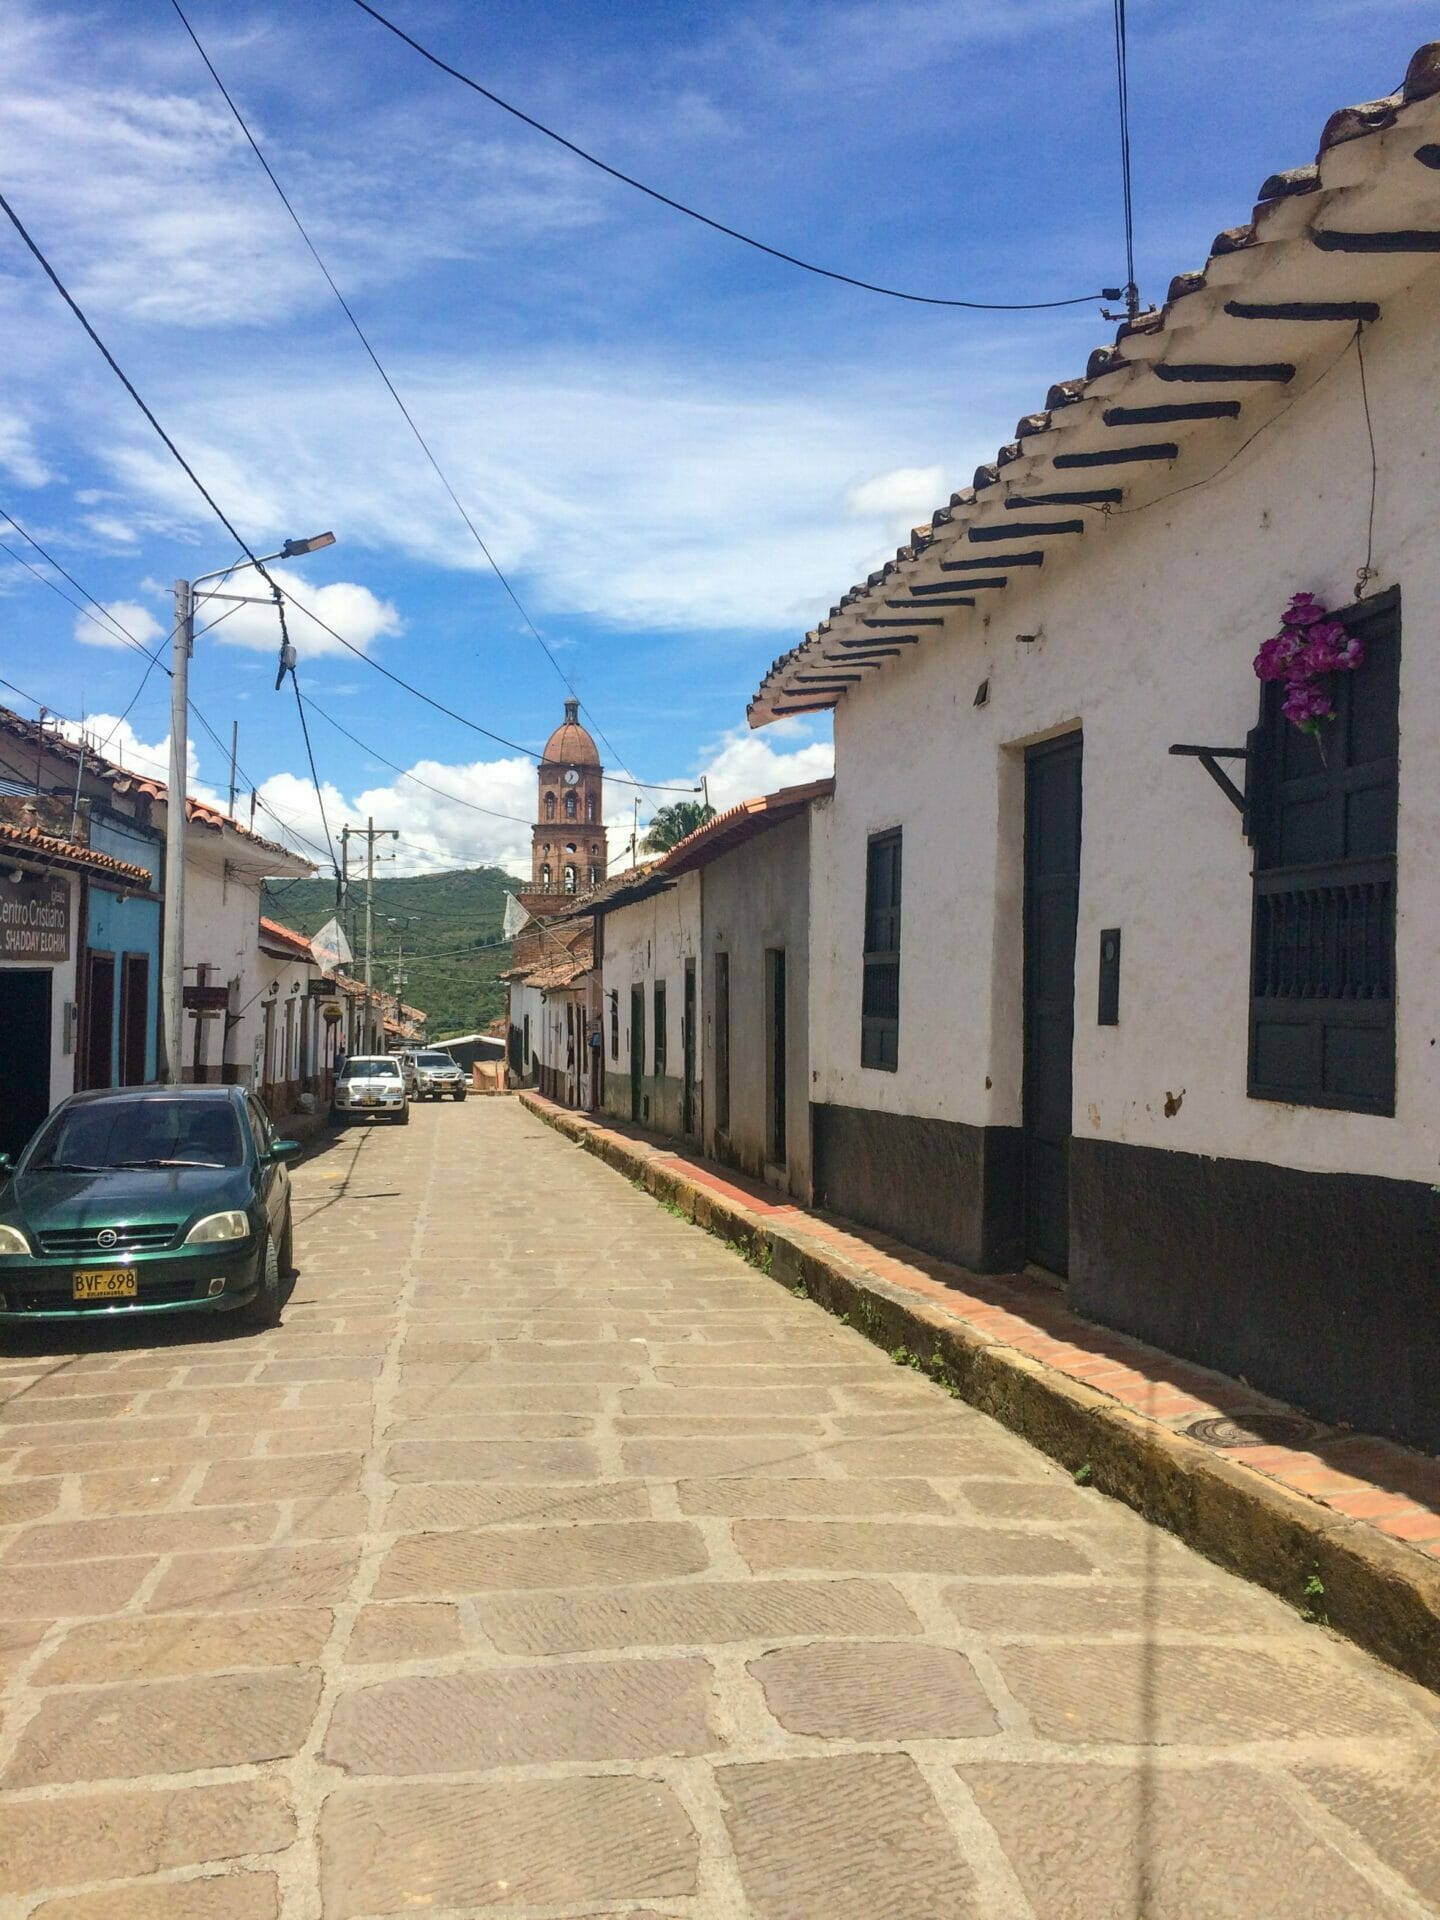 Small Colombia town